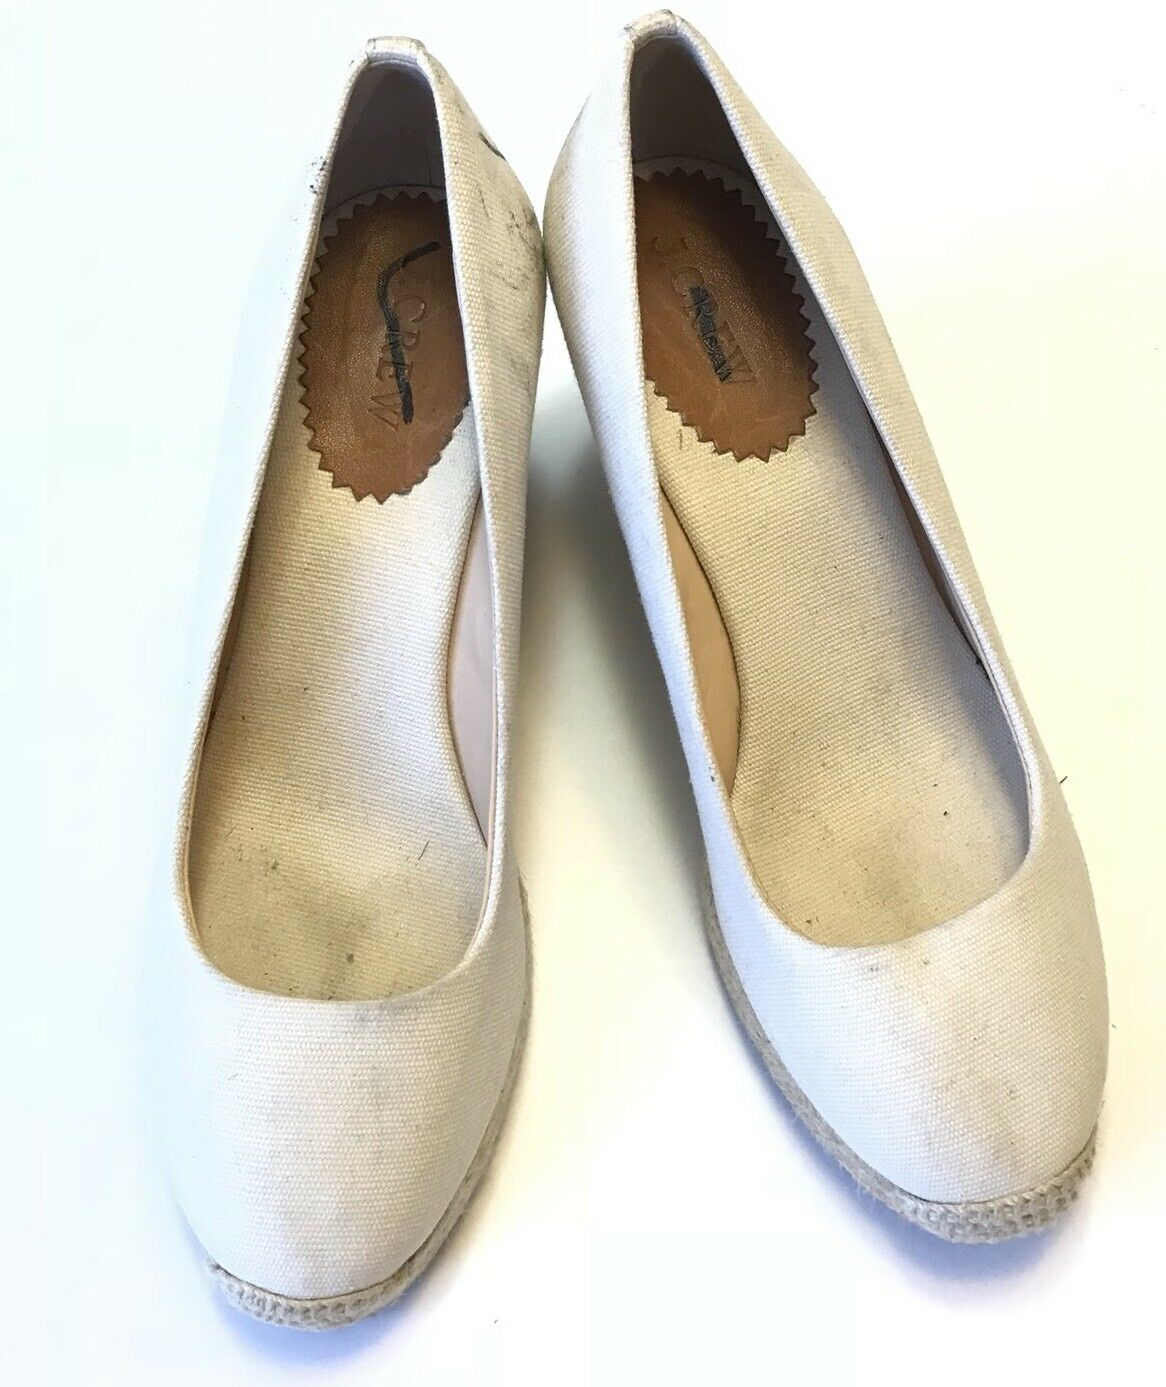 J. Crew shoes Womens 8 Ivory Seville Espadrille Wedge Heels